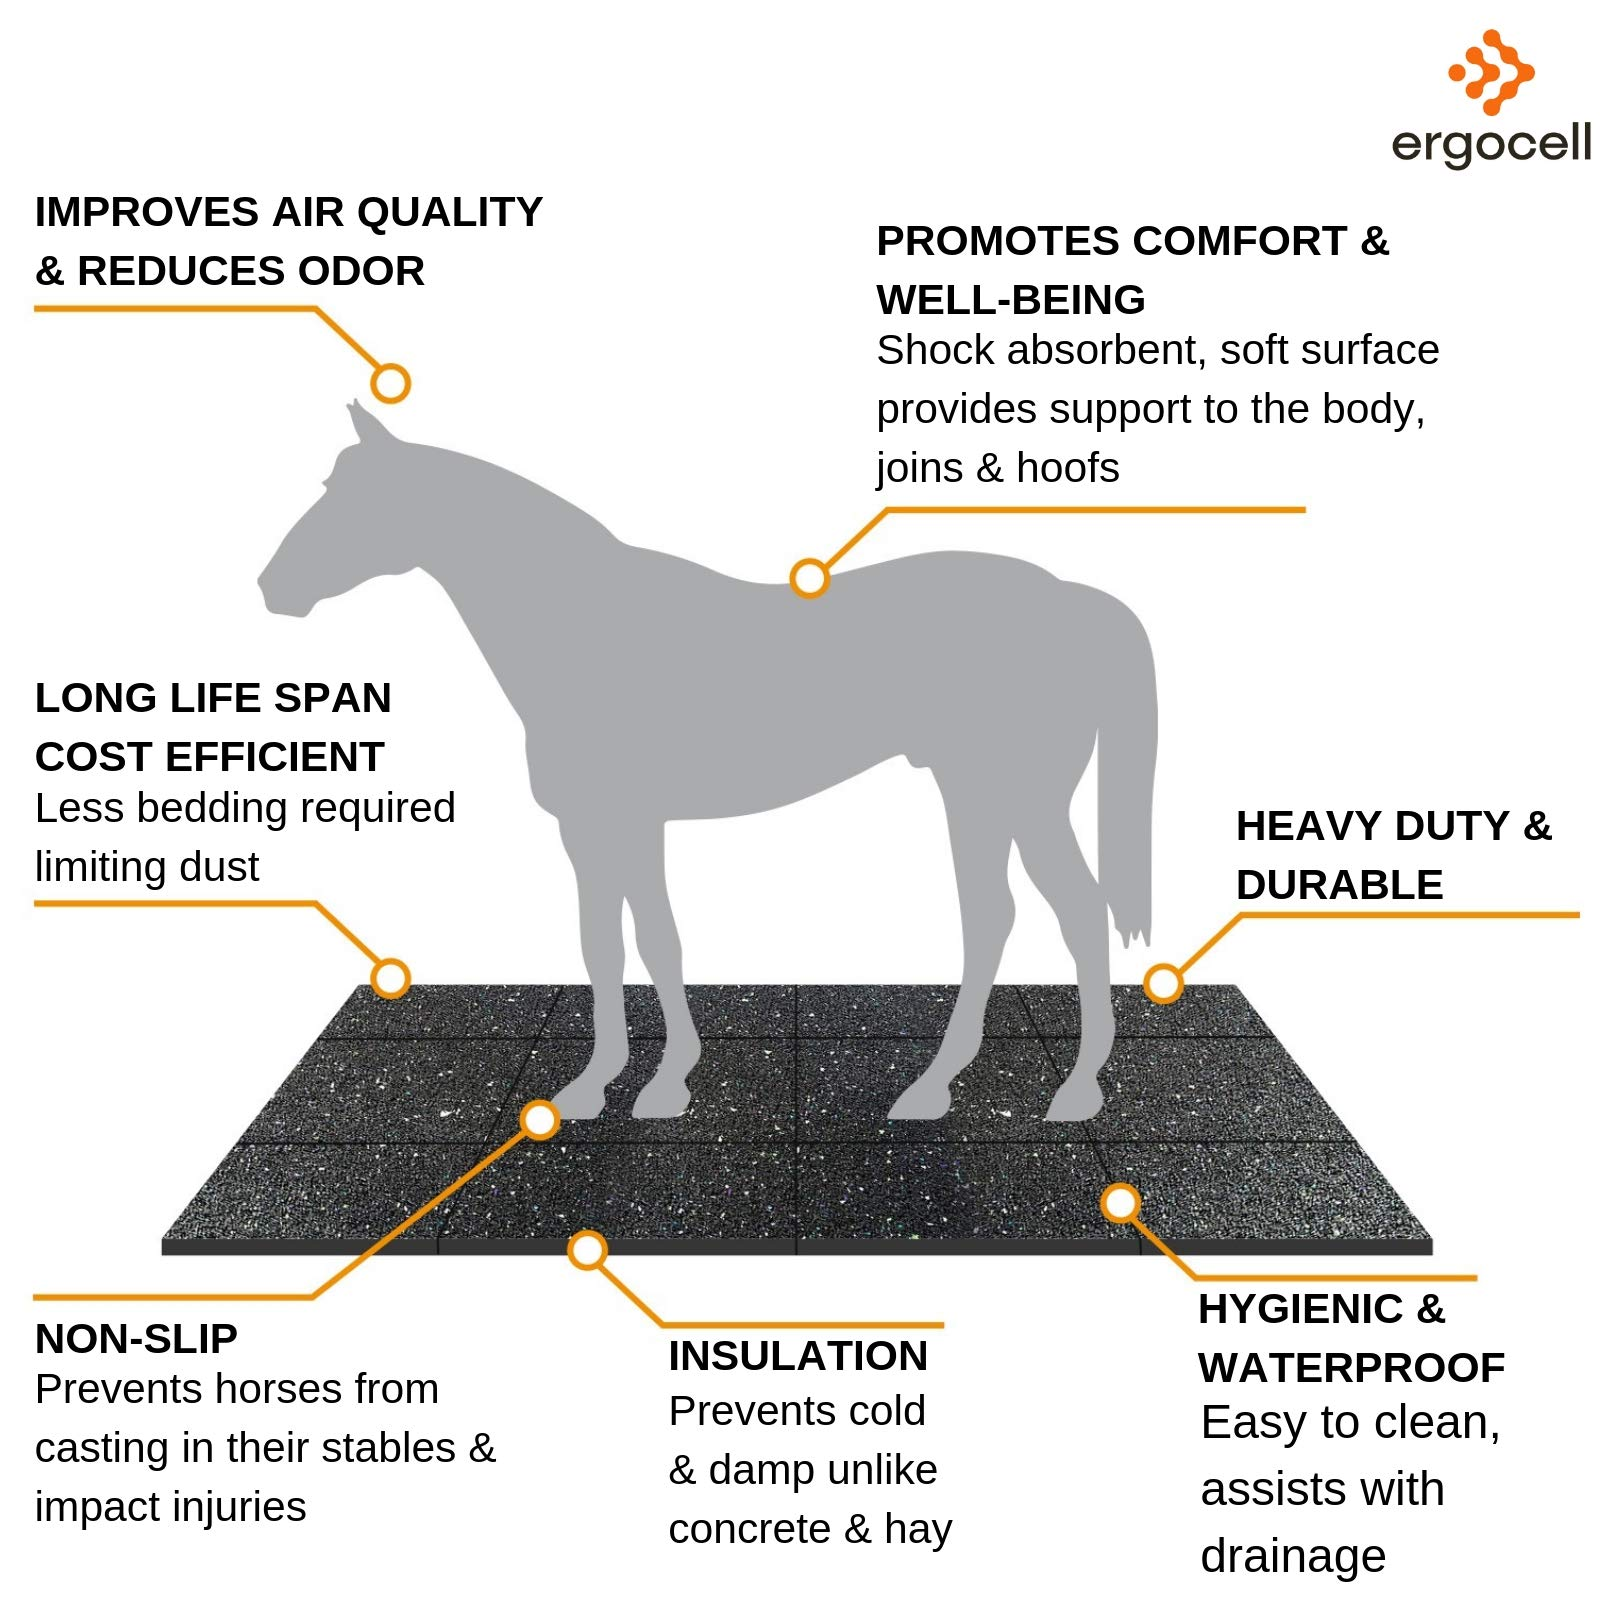 Ergocell Recycled Rubber Floor Mat – Shock Absorbent Gym Mat Flooring & Horse Stall Mat | Three Thicknesses, Multiple Sizes | 3/8'' - 2' x 2' by Ergocell (Image #8)